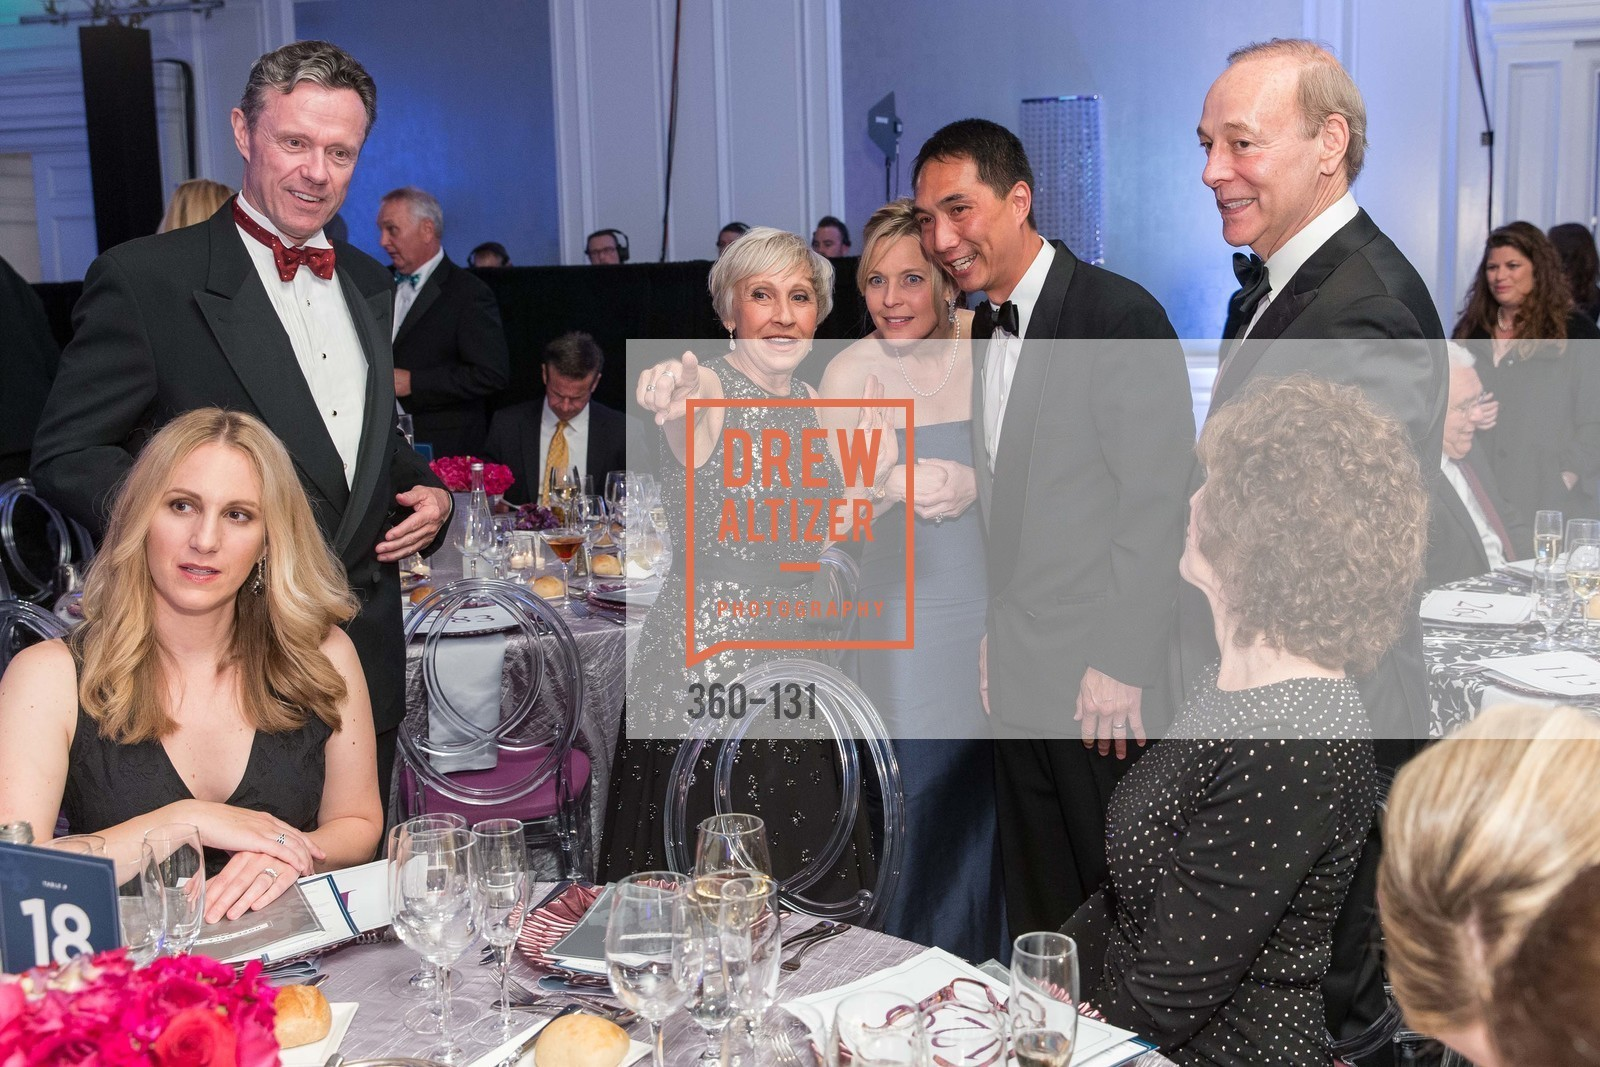 Lindsey Hulse, Bill Sagan, Pam Sagn, Timothy Connor, JUVENILE DIABETES RESEARCH FOUNDATION  Hope Gala, The Ritz-Carlton, May 29th, 2015,Drew Altizer, Drew Altizer Photography, full-service agency, private events, San Francisco photographer, photographer california